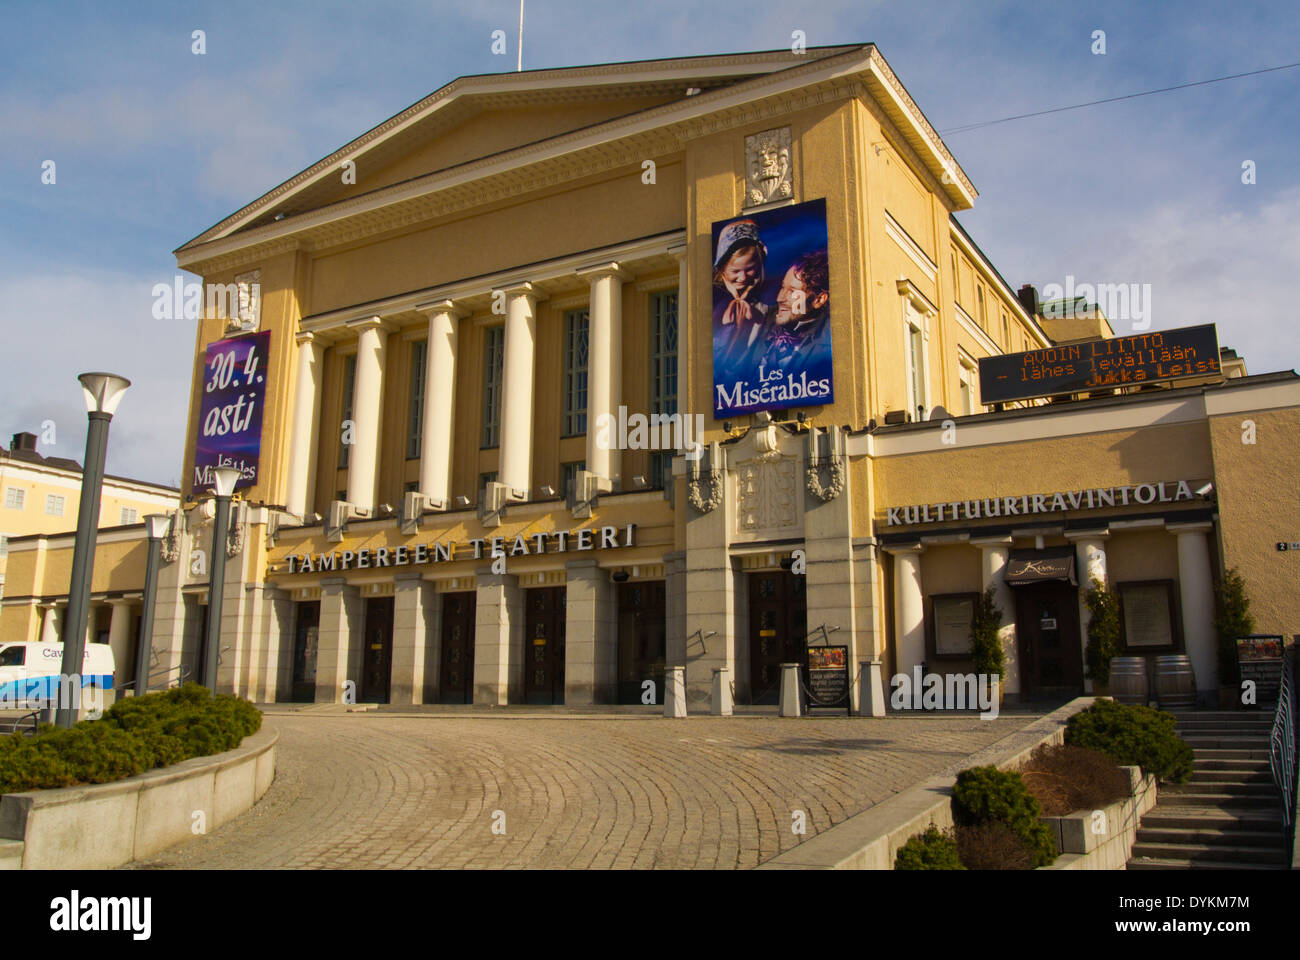 Tampereen teatteri, the main theatre (1913), Tampere, central Finland, Europe Stock Photo